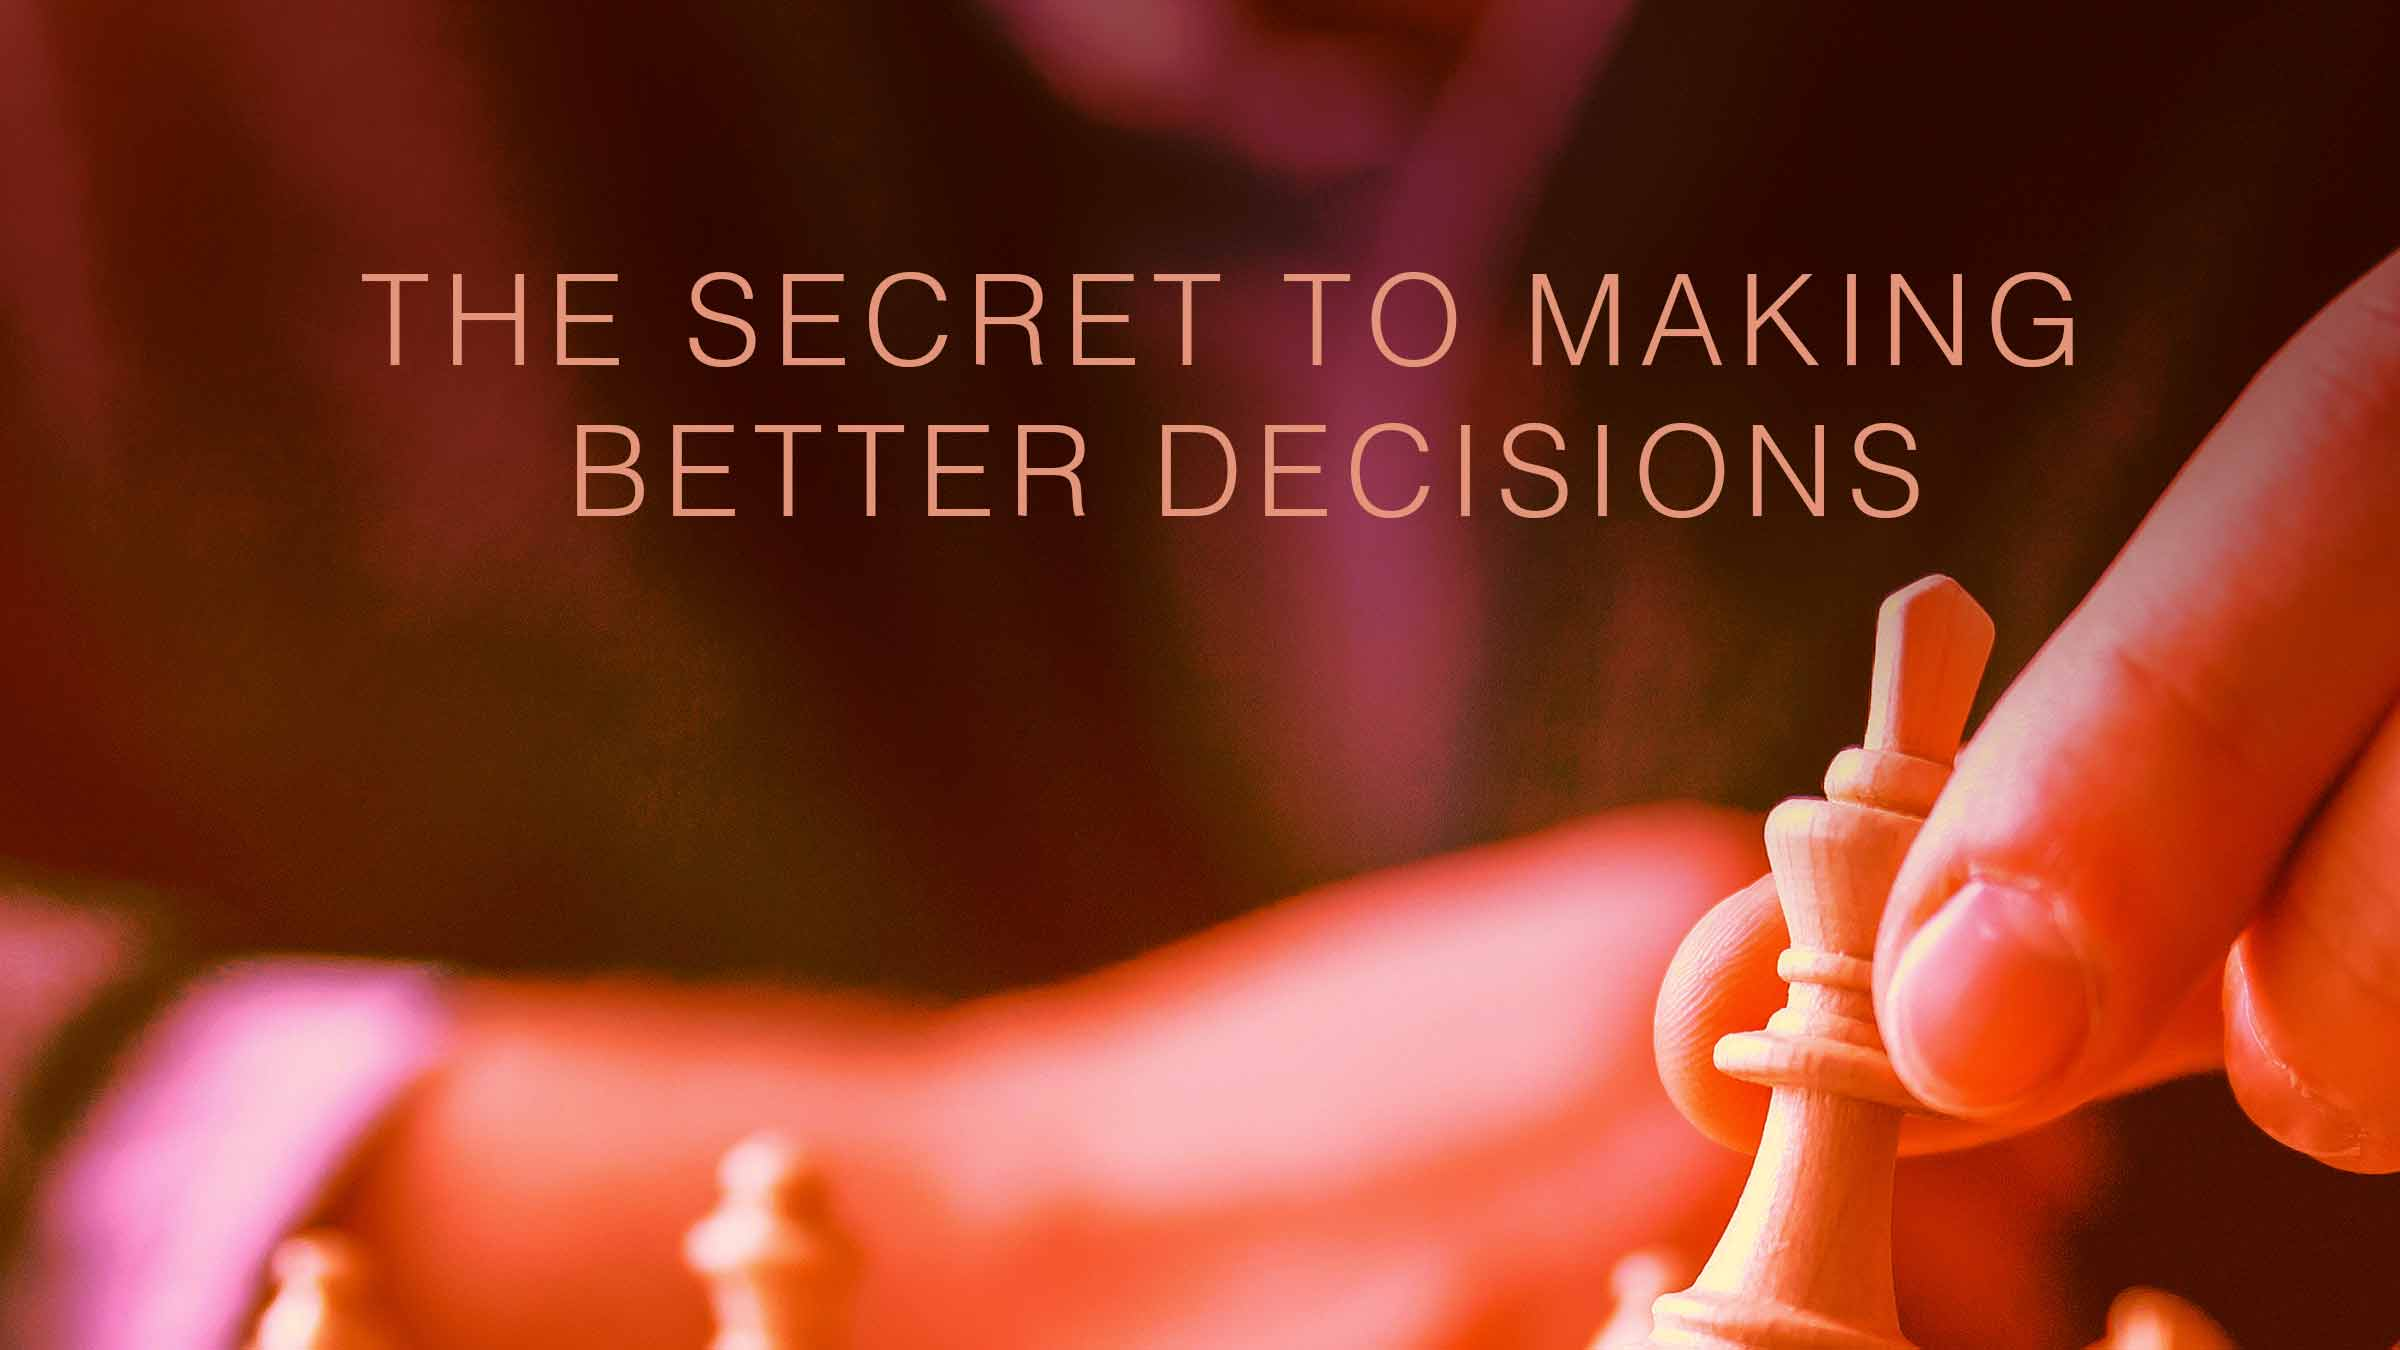 The Secret to Making Better Decisions